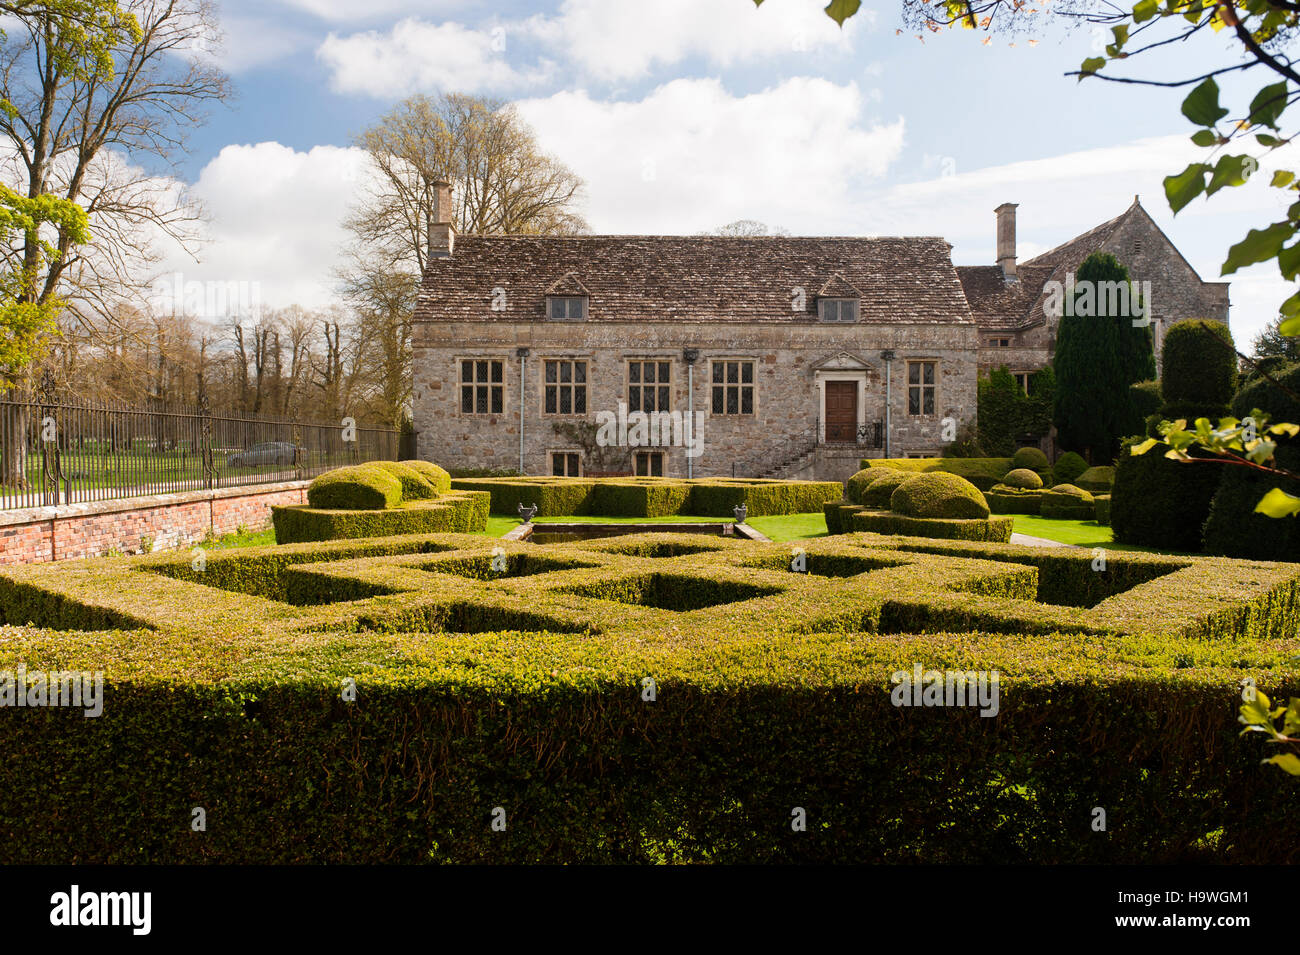 View over hedging towards the west front at Avebury Manor, Wiltshire. - Stock Image